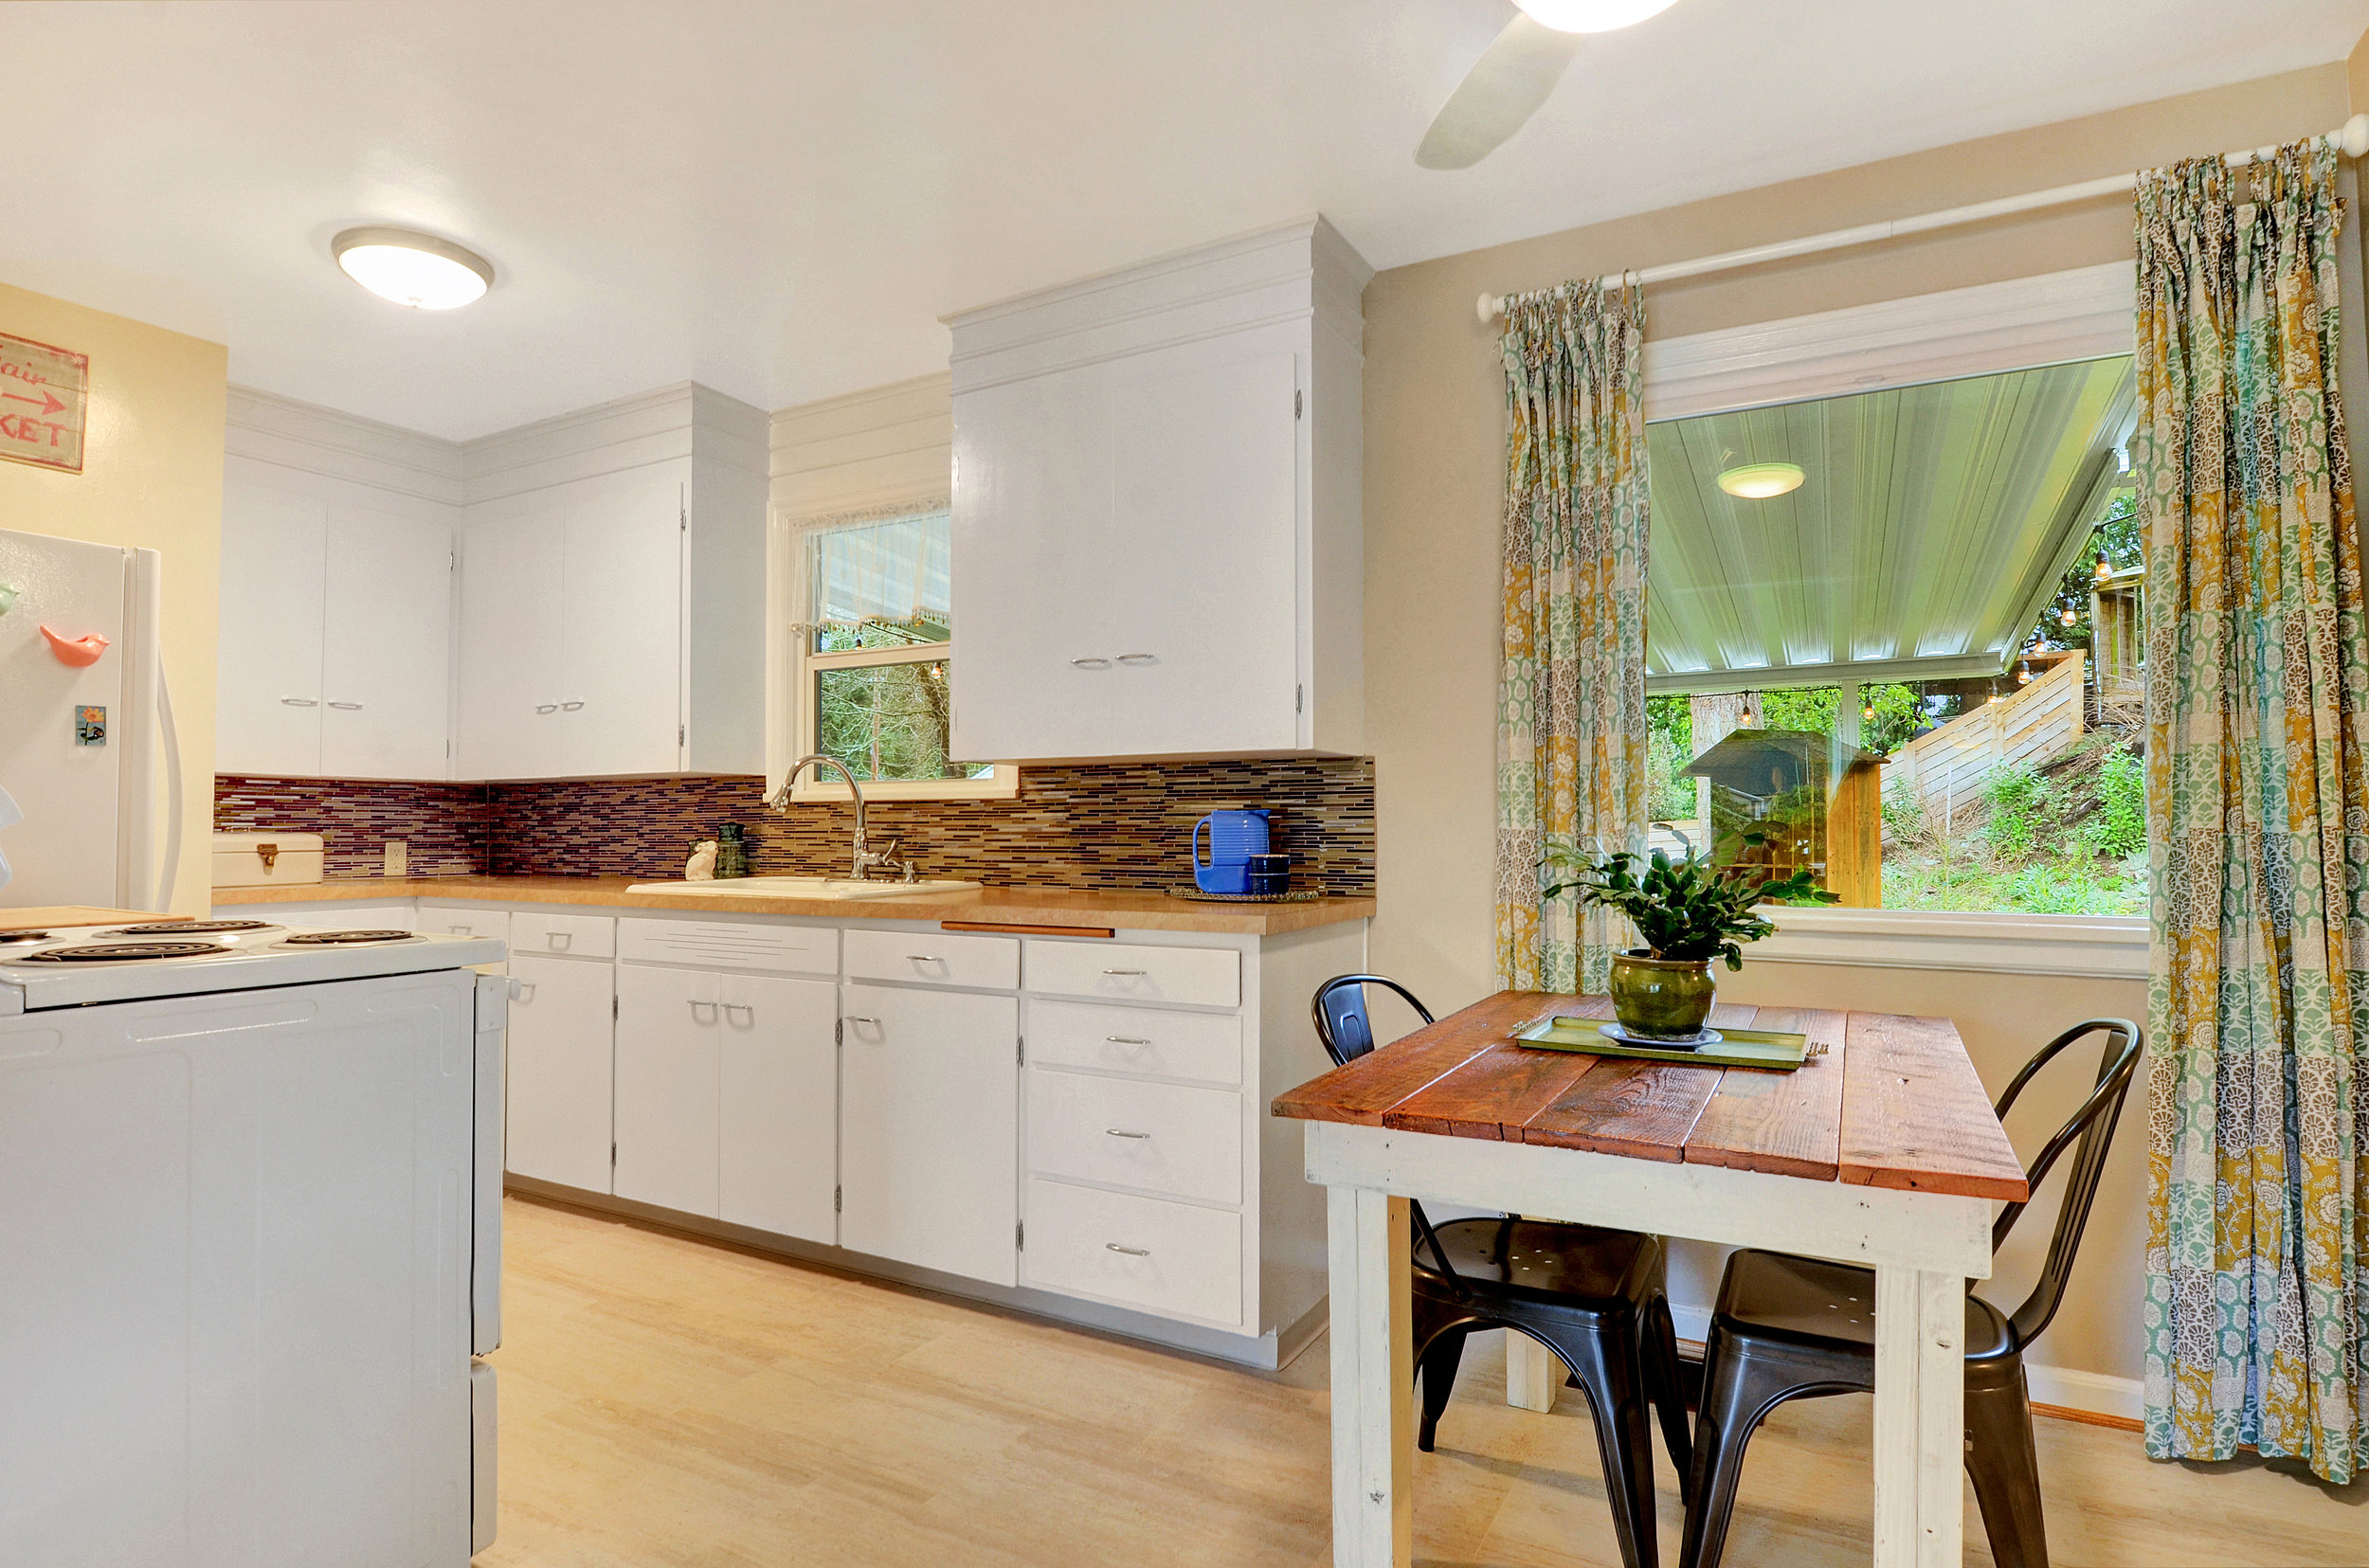 The dining area has a nice view to the back yard and flows seamlessly into the kitchen and living rooms. A sleek Minka Aire kitchen fan keeps the dining area bright and helps with airflow too.